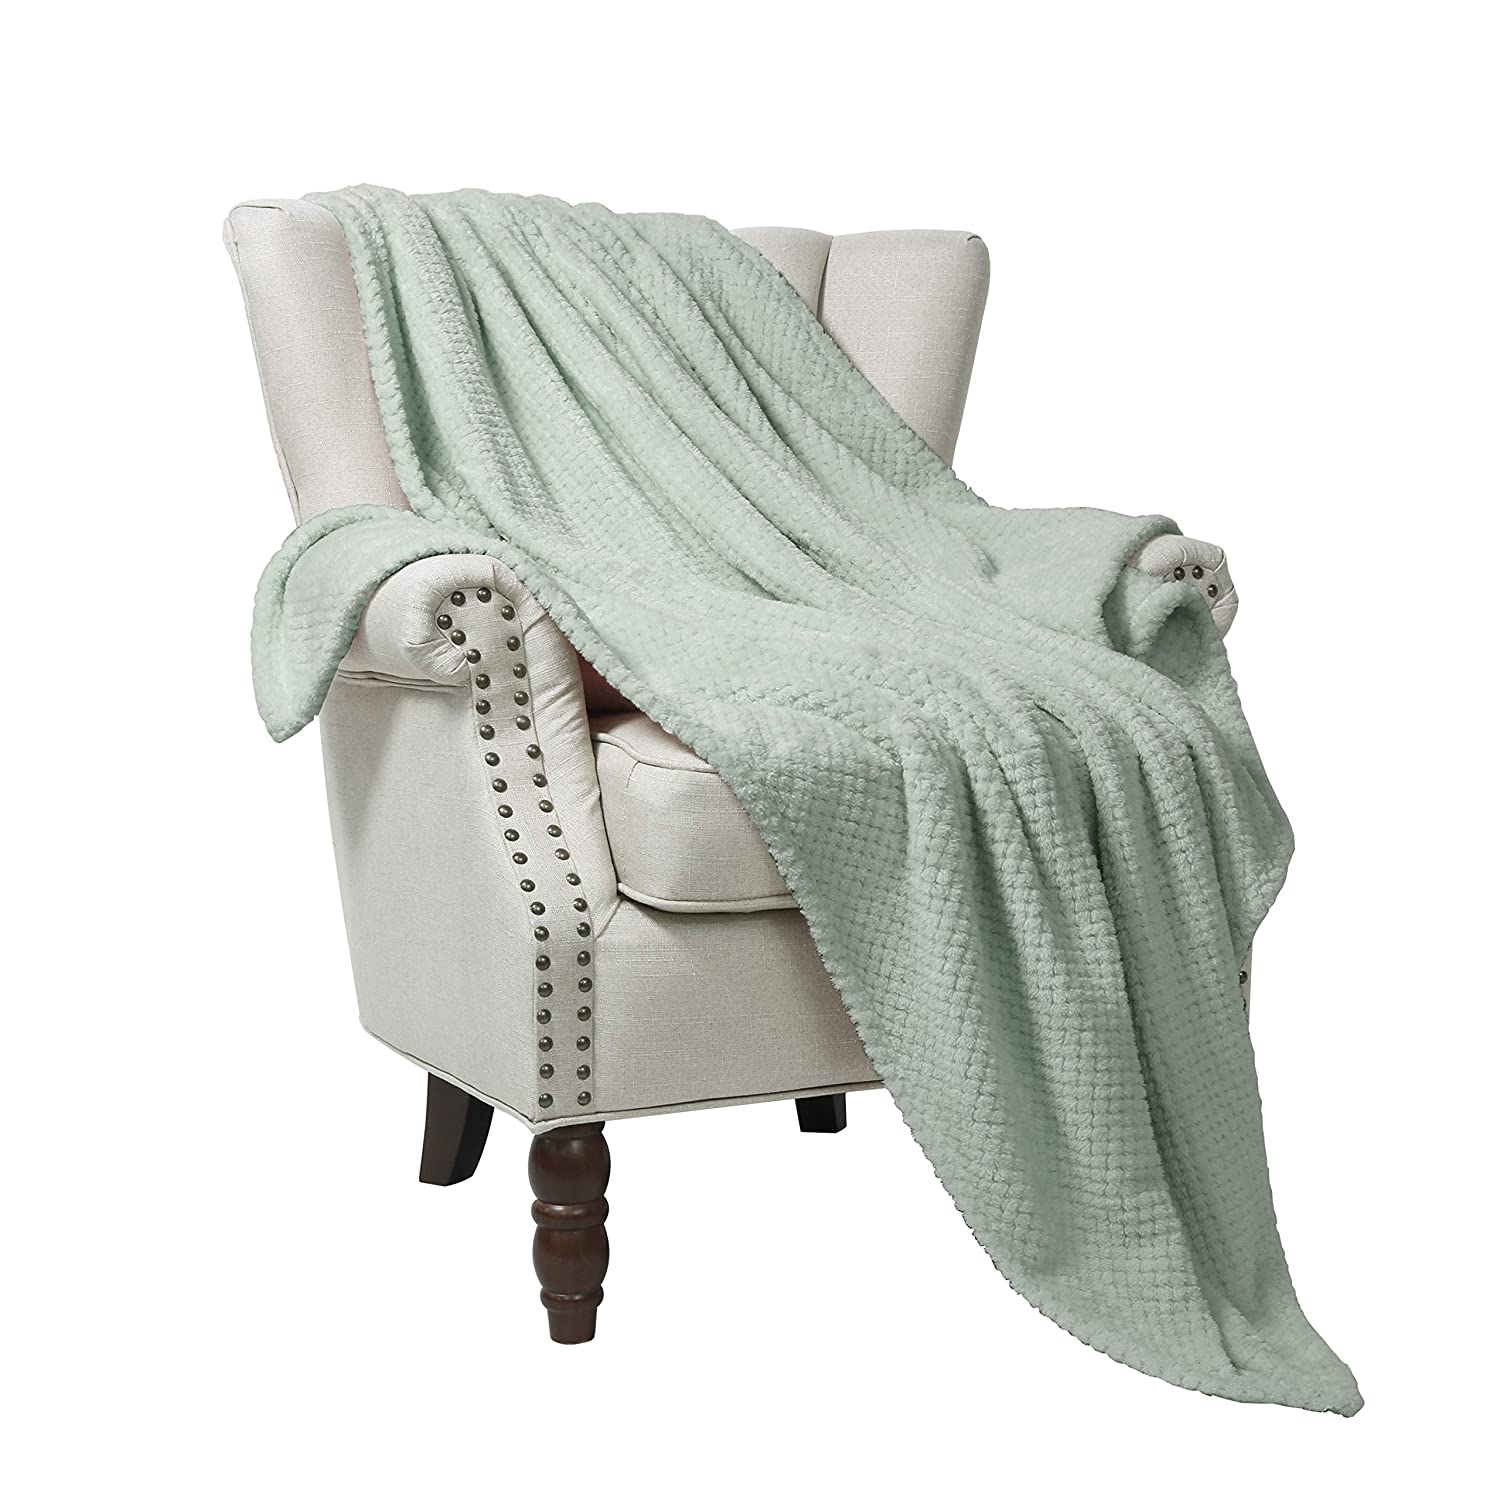 "Exclusivo Mezcla Waffle Flannel Fleece Velvet Plush Large Throw Blanket – 50"" x 70"" (Mint)"